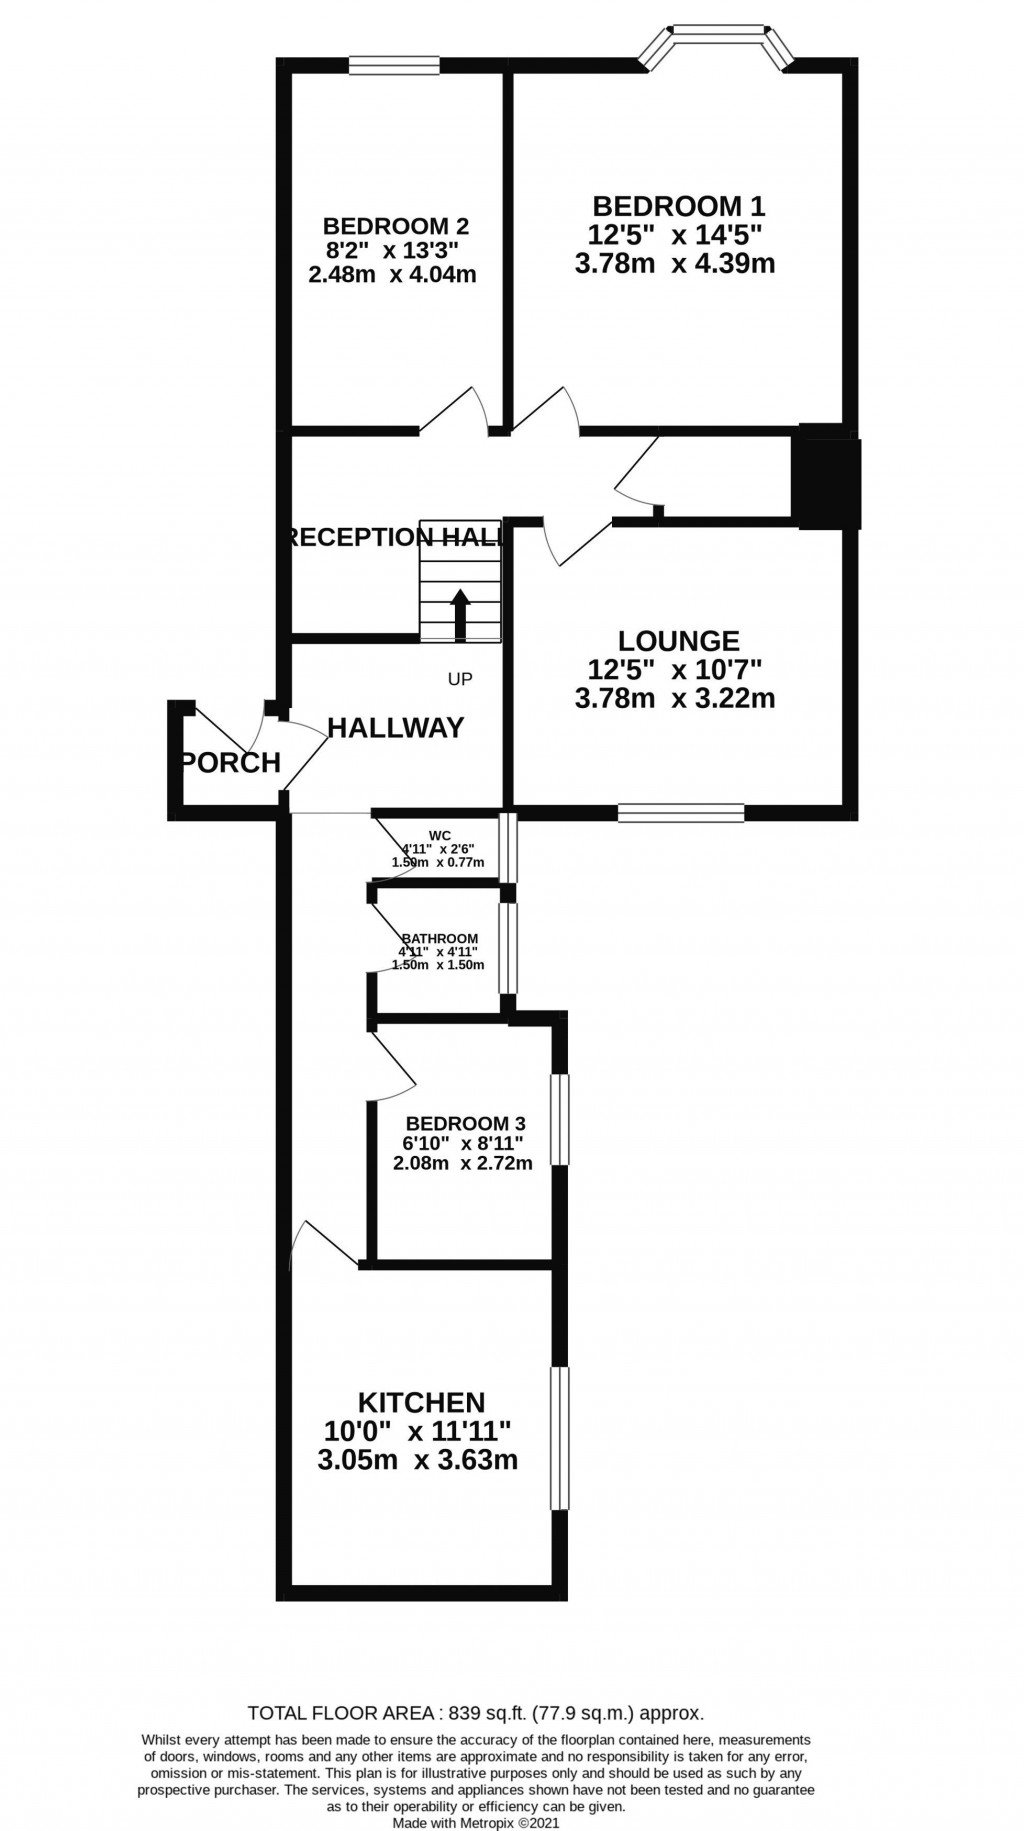 Floorplan for Clarendon Road, Weston-Super-Mare - 3 BED FLAT WITH GARAGE